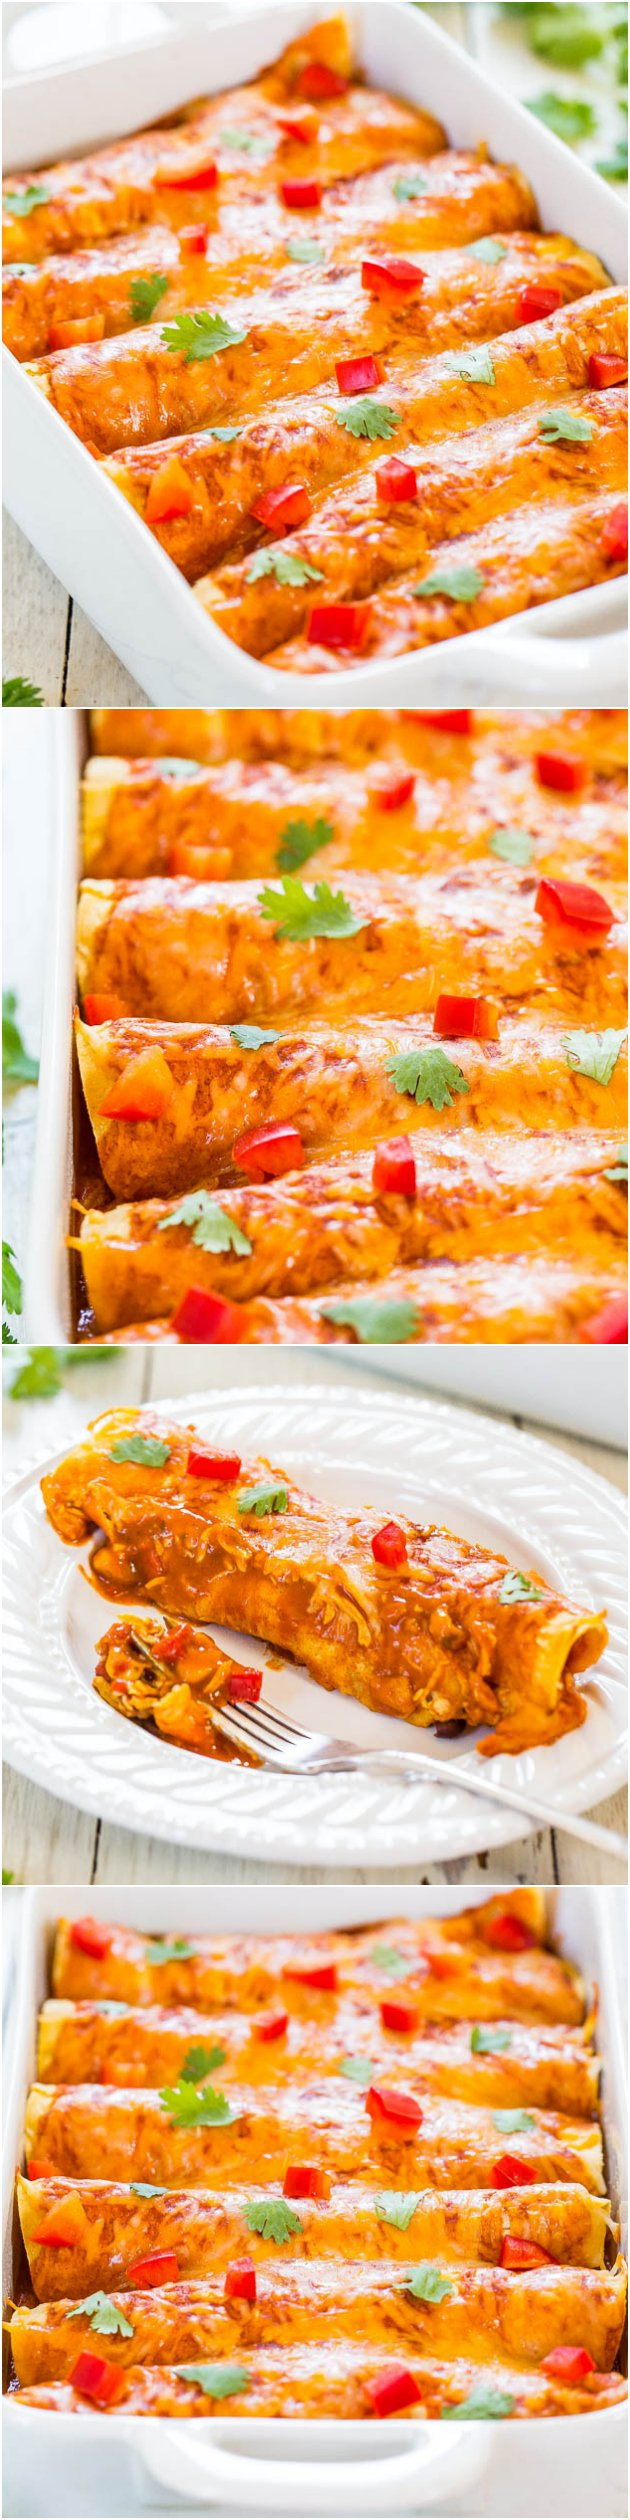 Vegetarian Sweet Potato Black Bean Enchiladas — Warm sweet potatoes, slightly spicy corn and beans, all smothered in cheese and red sauce. They're satisfying, hearty, and you'll never miss the meat!